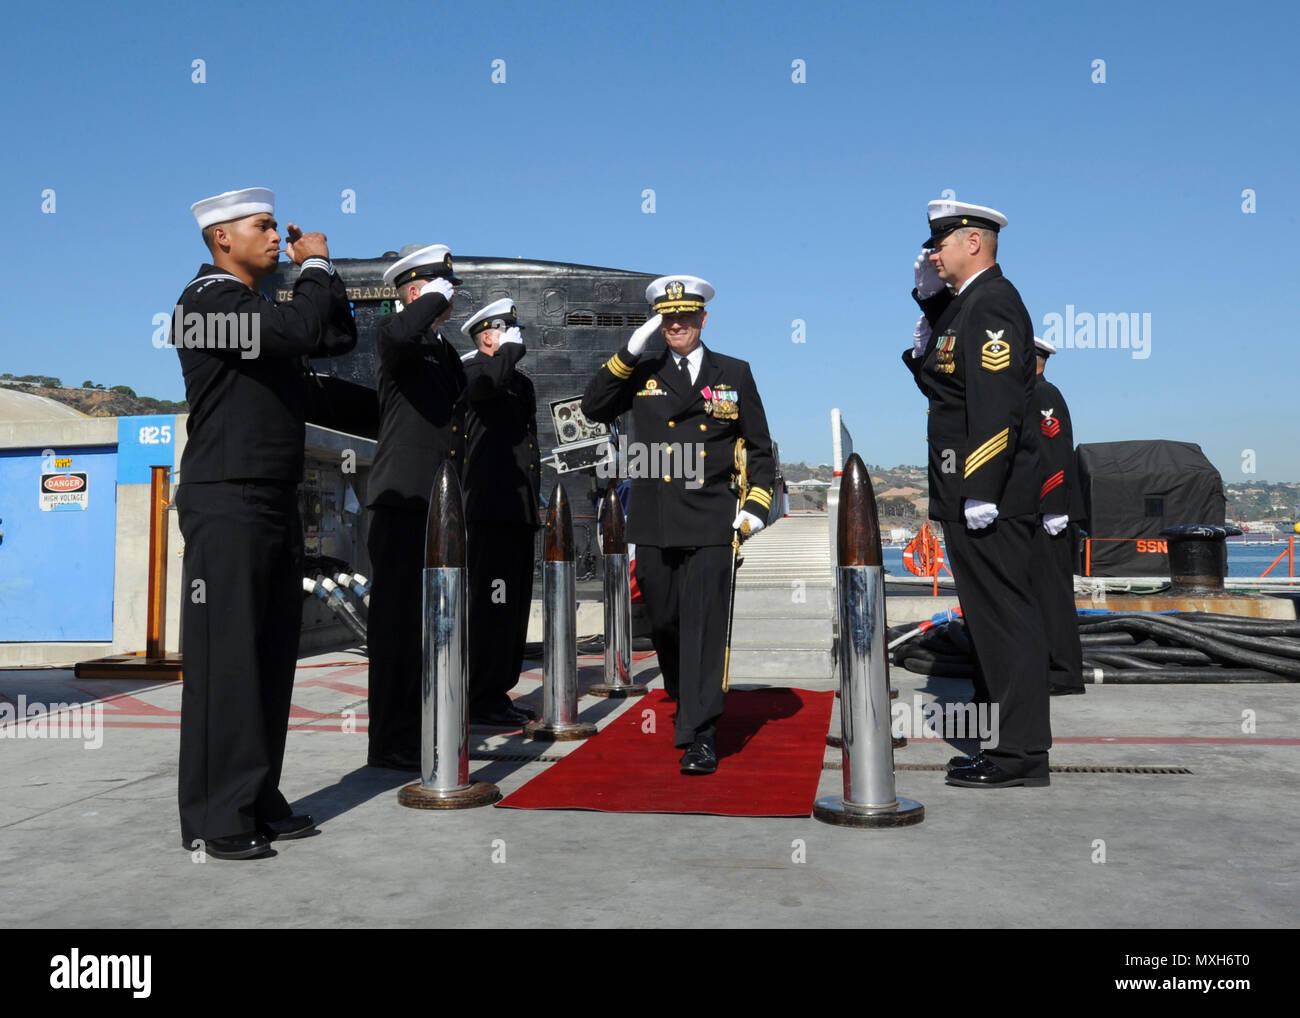 161104-N-HF252-0050 SAN DIEGO (Nov. 4, 2016) Cmdr. Jeff Juergens, commanding officer of the Los Angeles-class fast attack submarine USS San Francisco (SSN 711) passes through sideboys during a change of command and farewell ceremony on Naval Base Point Loma. The San Francisco is scheduled to shift homeports to Norfolk, Va. to begin a two year conversion process to become a moored training ship at the Nuclear Power Training Unit in Charleston, S.C.  (U.S. Navy photo by Petty Officer 1st Class Derek Stroop/Released) - Stock Image